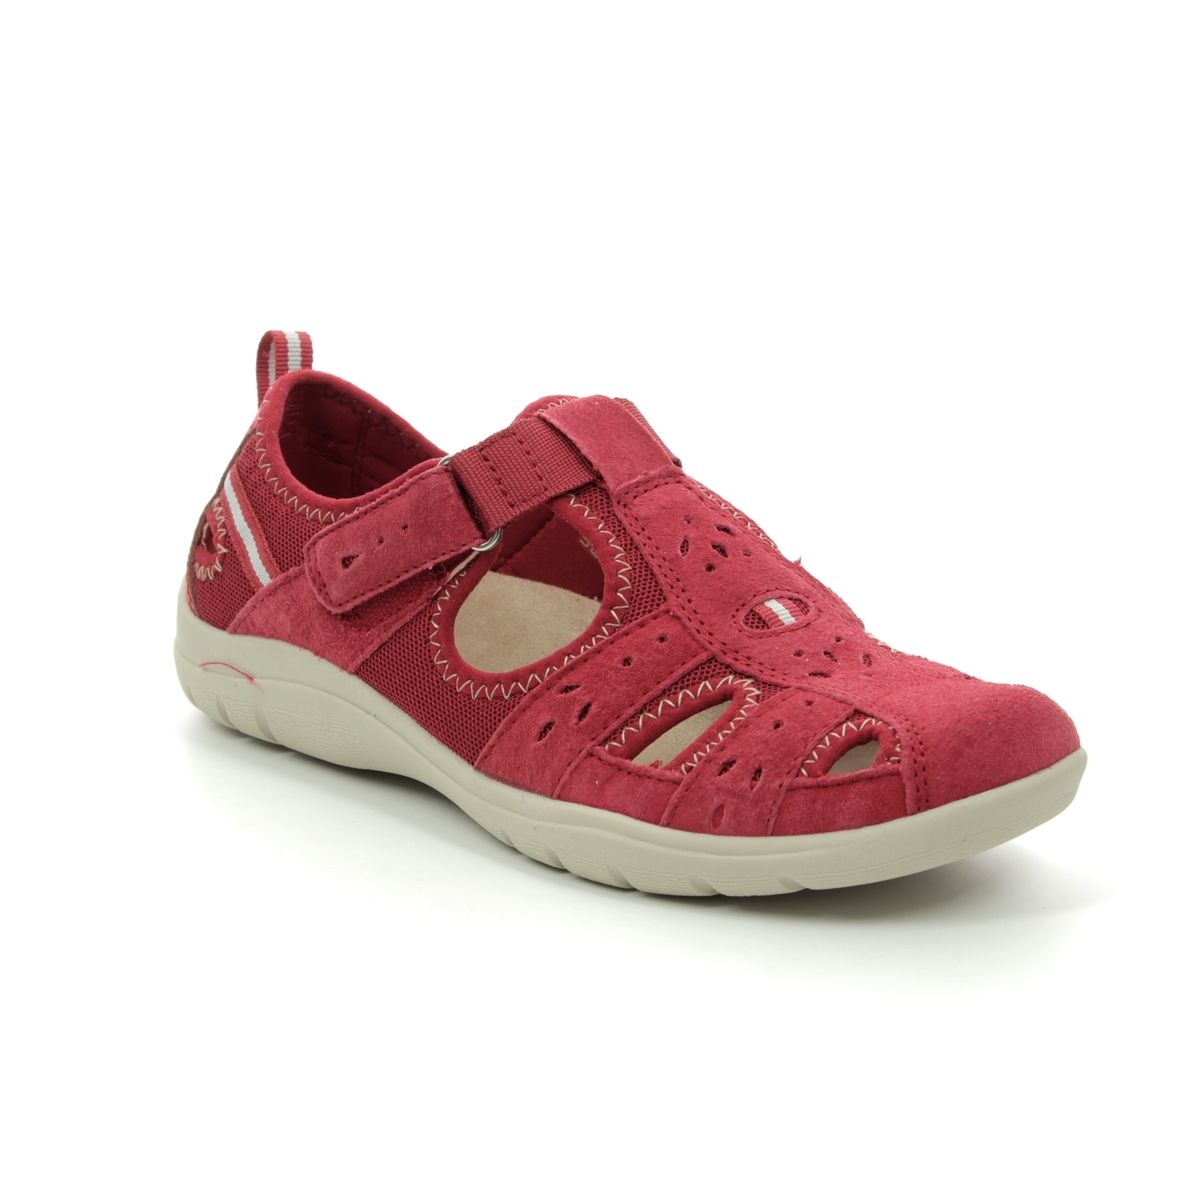 9c777749645e0 Earth Spirit Closed Toe Sandals - Red - 30200/80 CLEVELAND 91